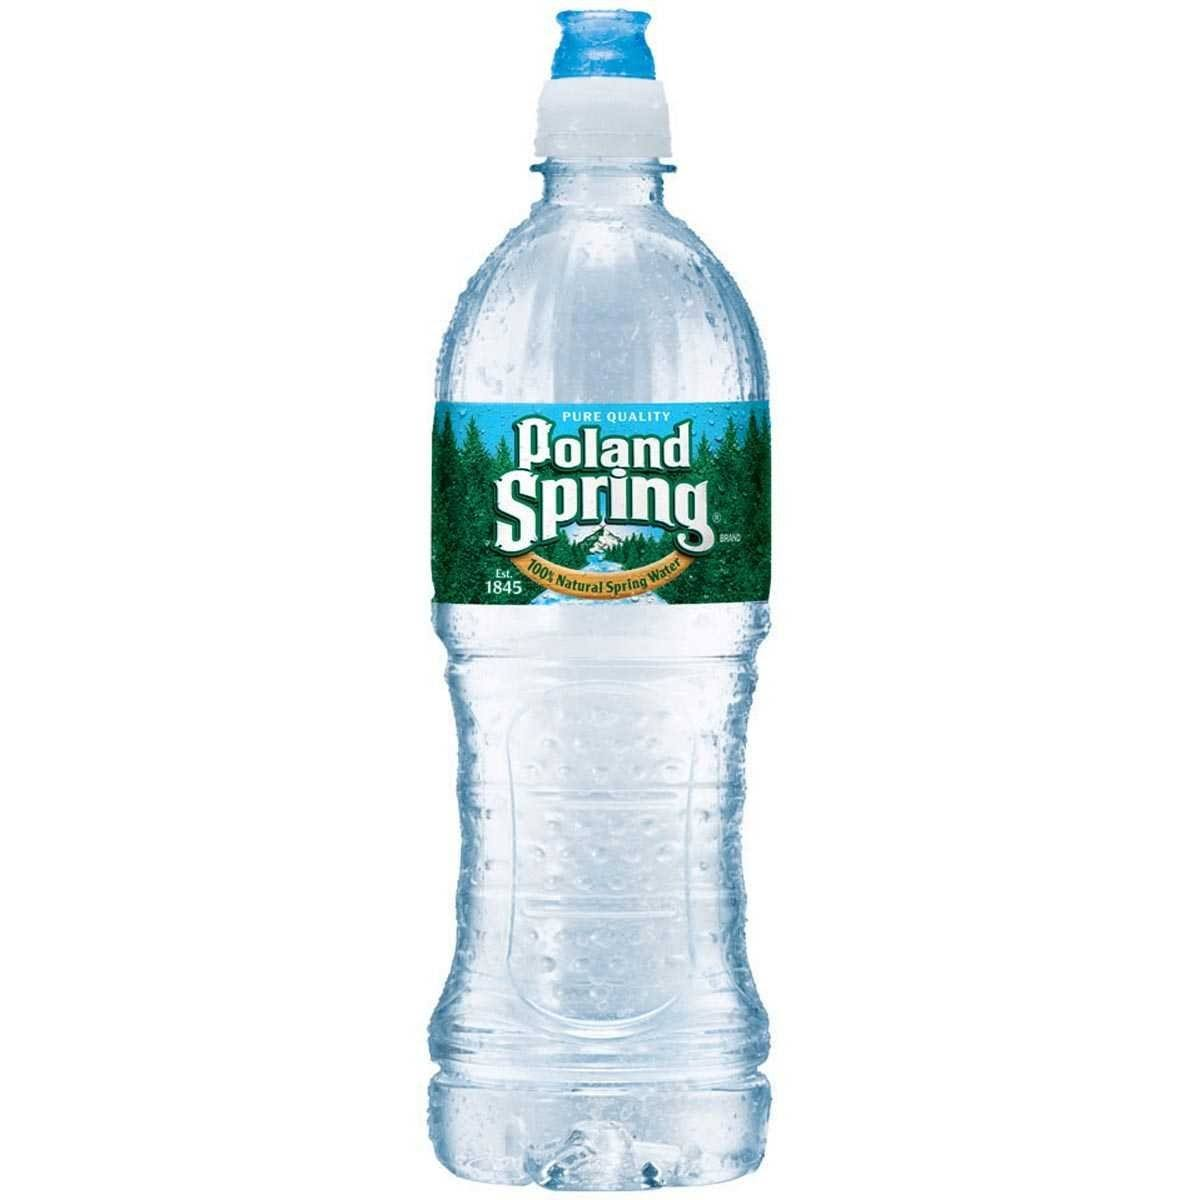 Poland Spring Water, Natural Spring - 700 ml